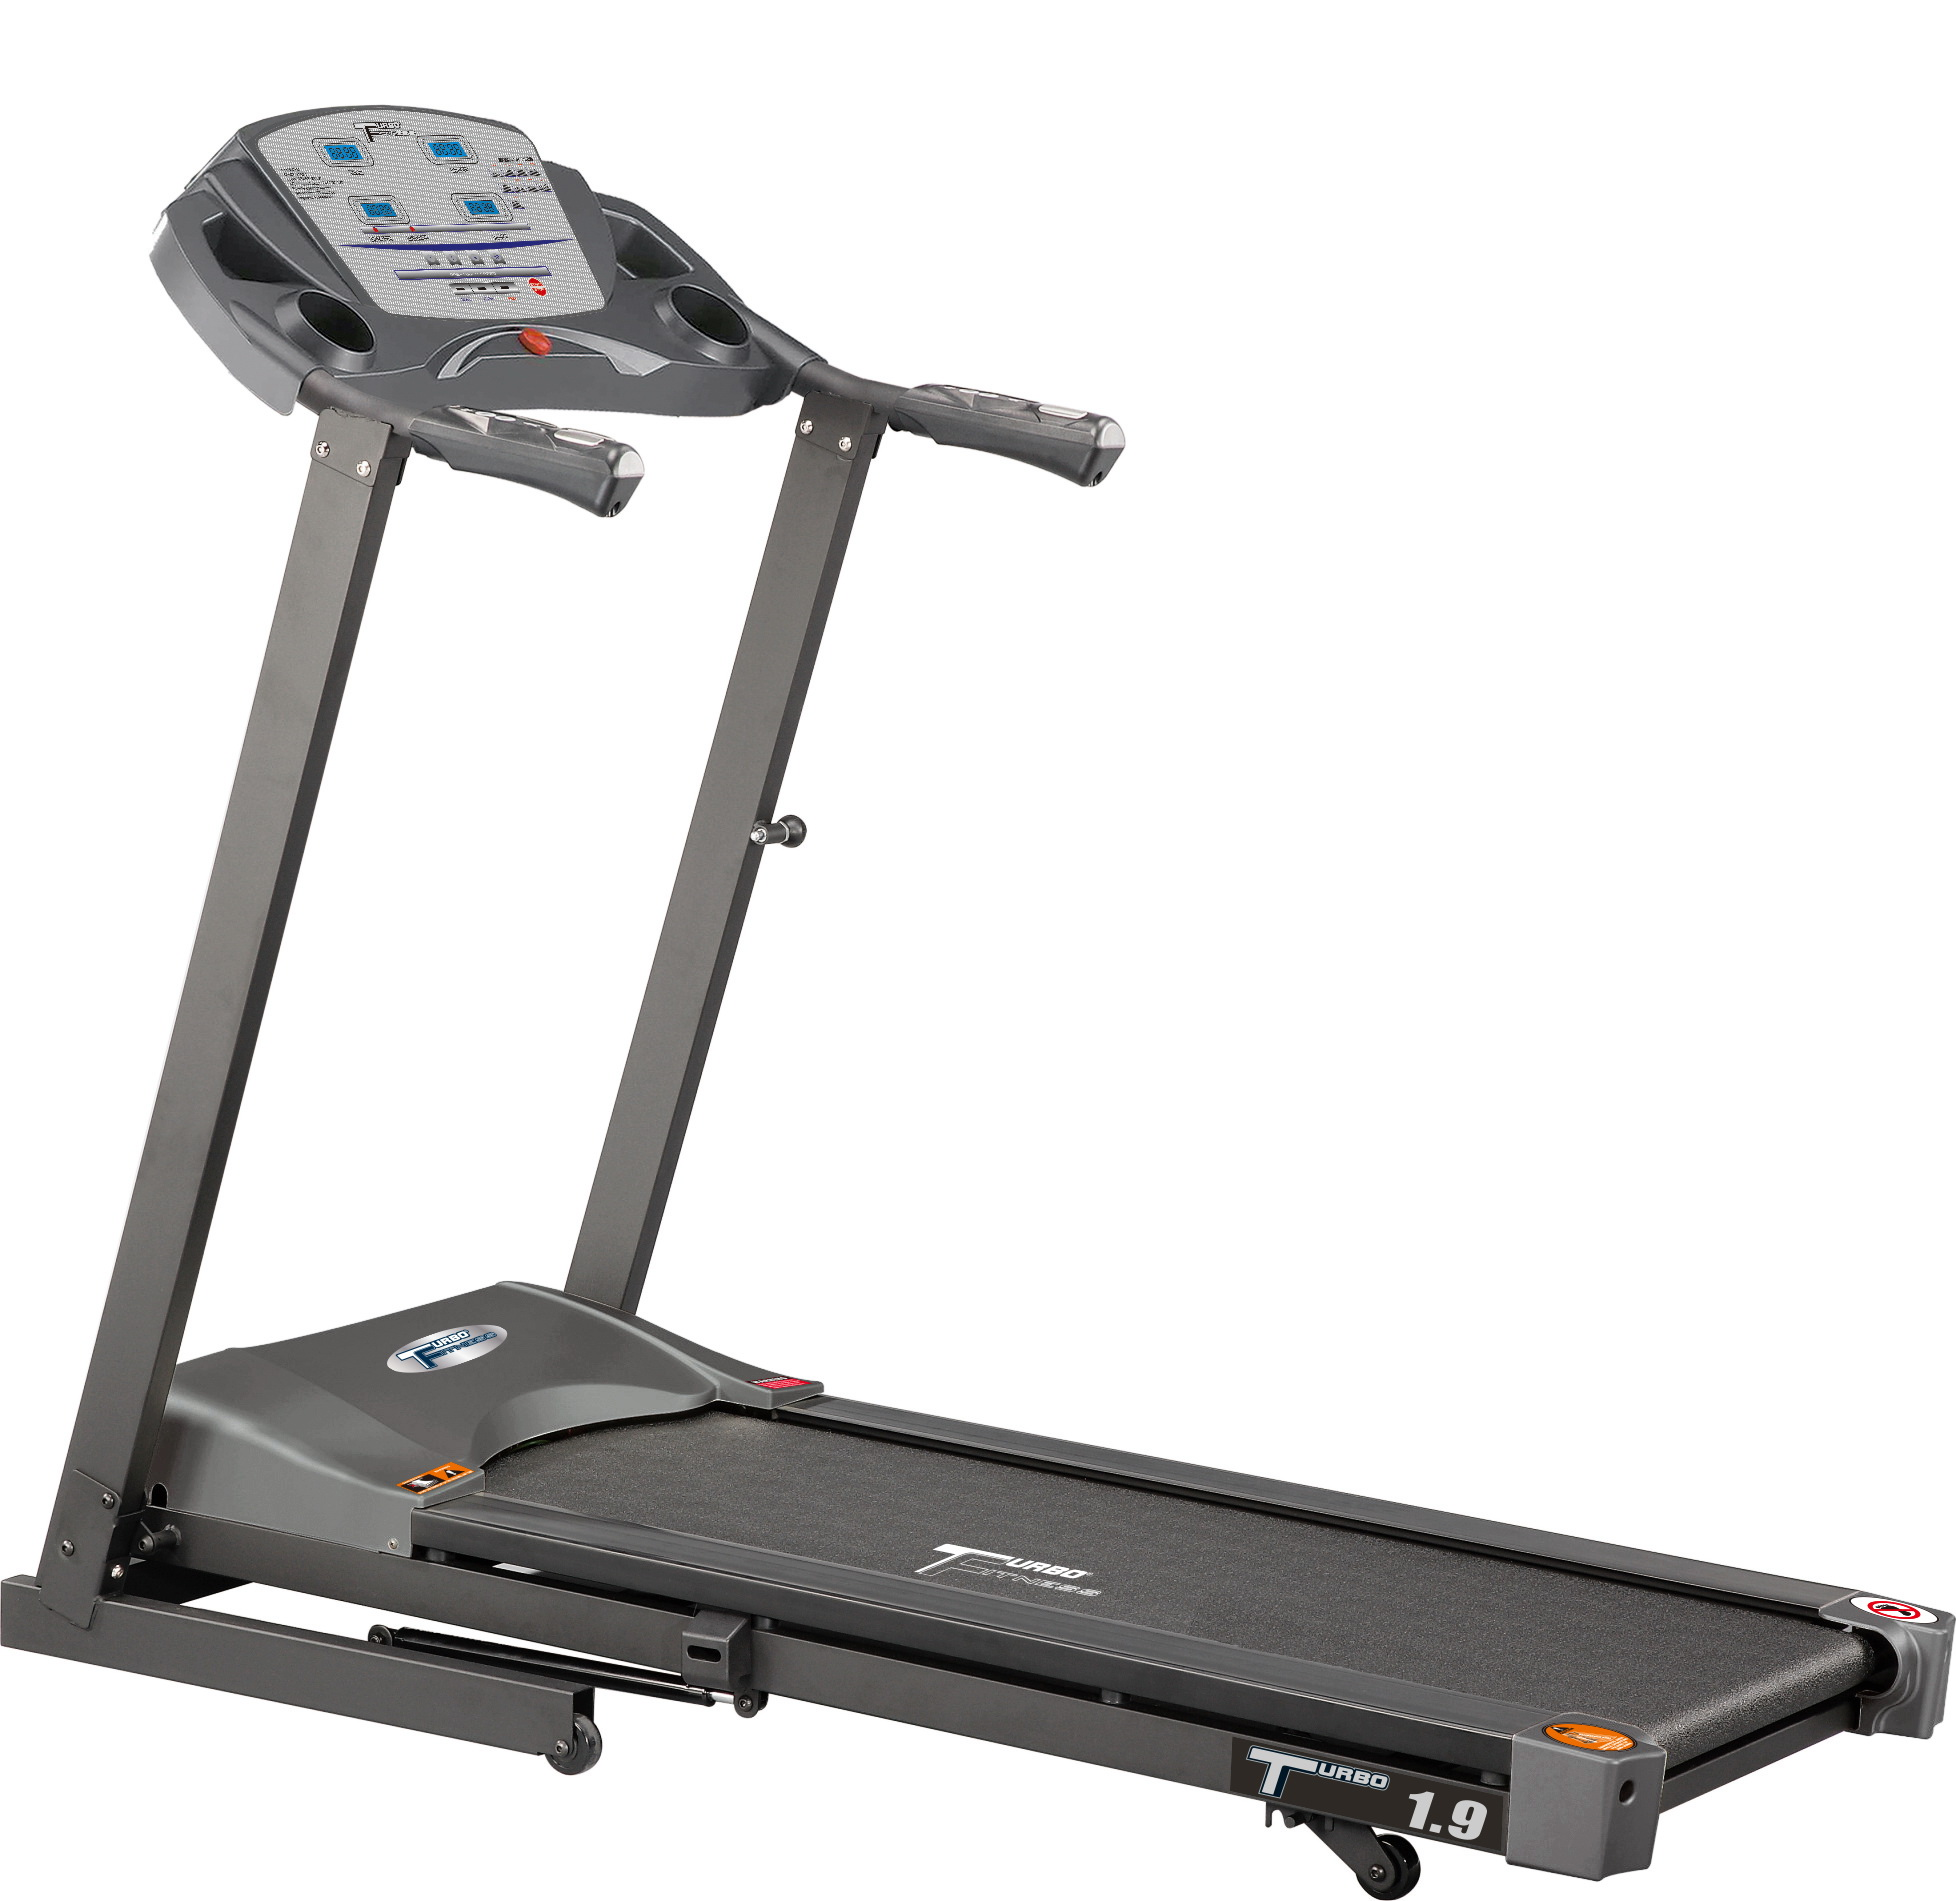 TURBO FITNESS T1.9 TREADMILL 3 MONTHS HIRE/BUY $249